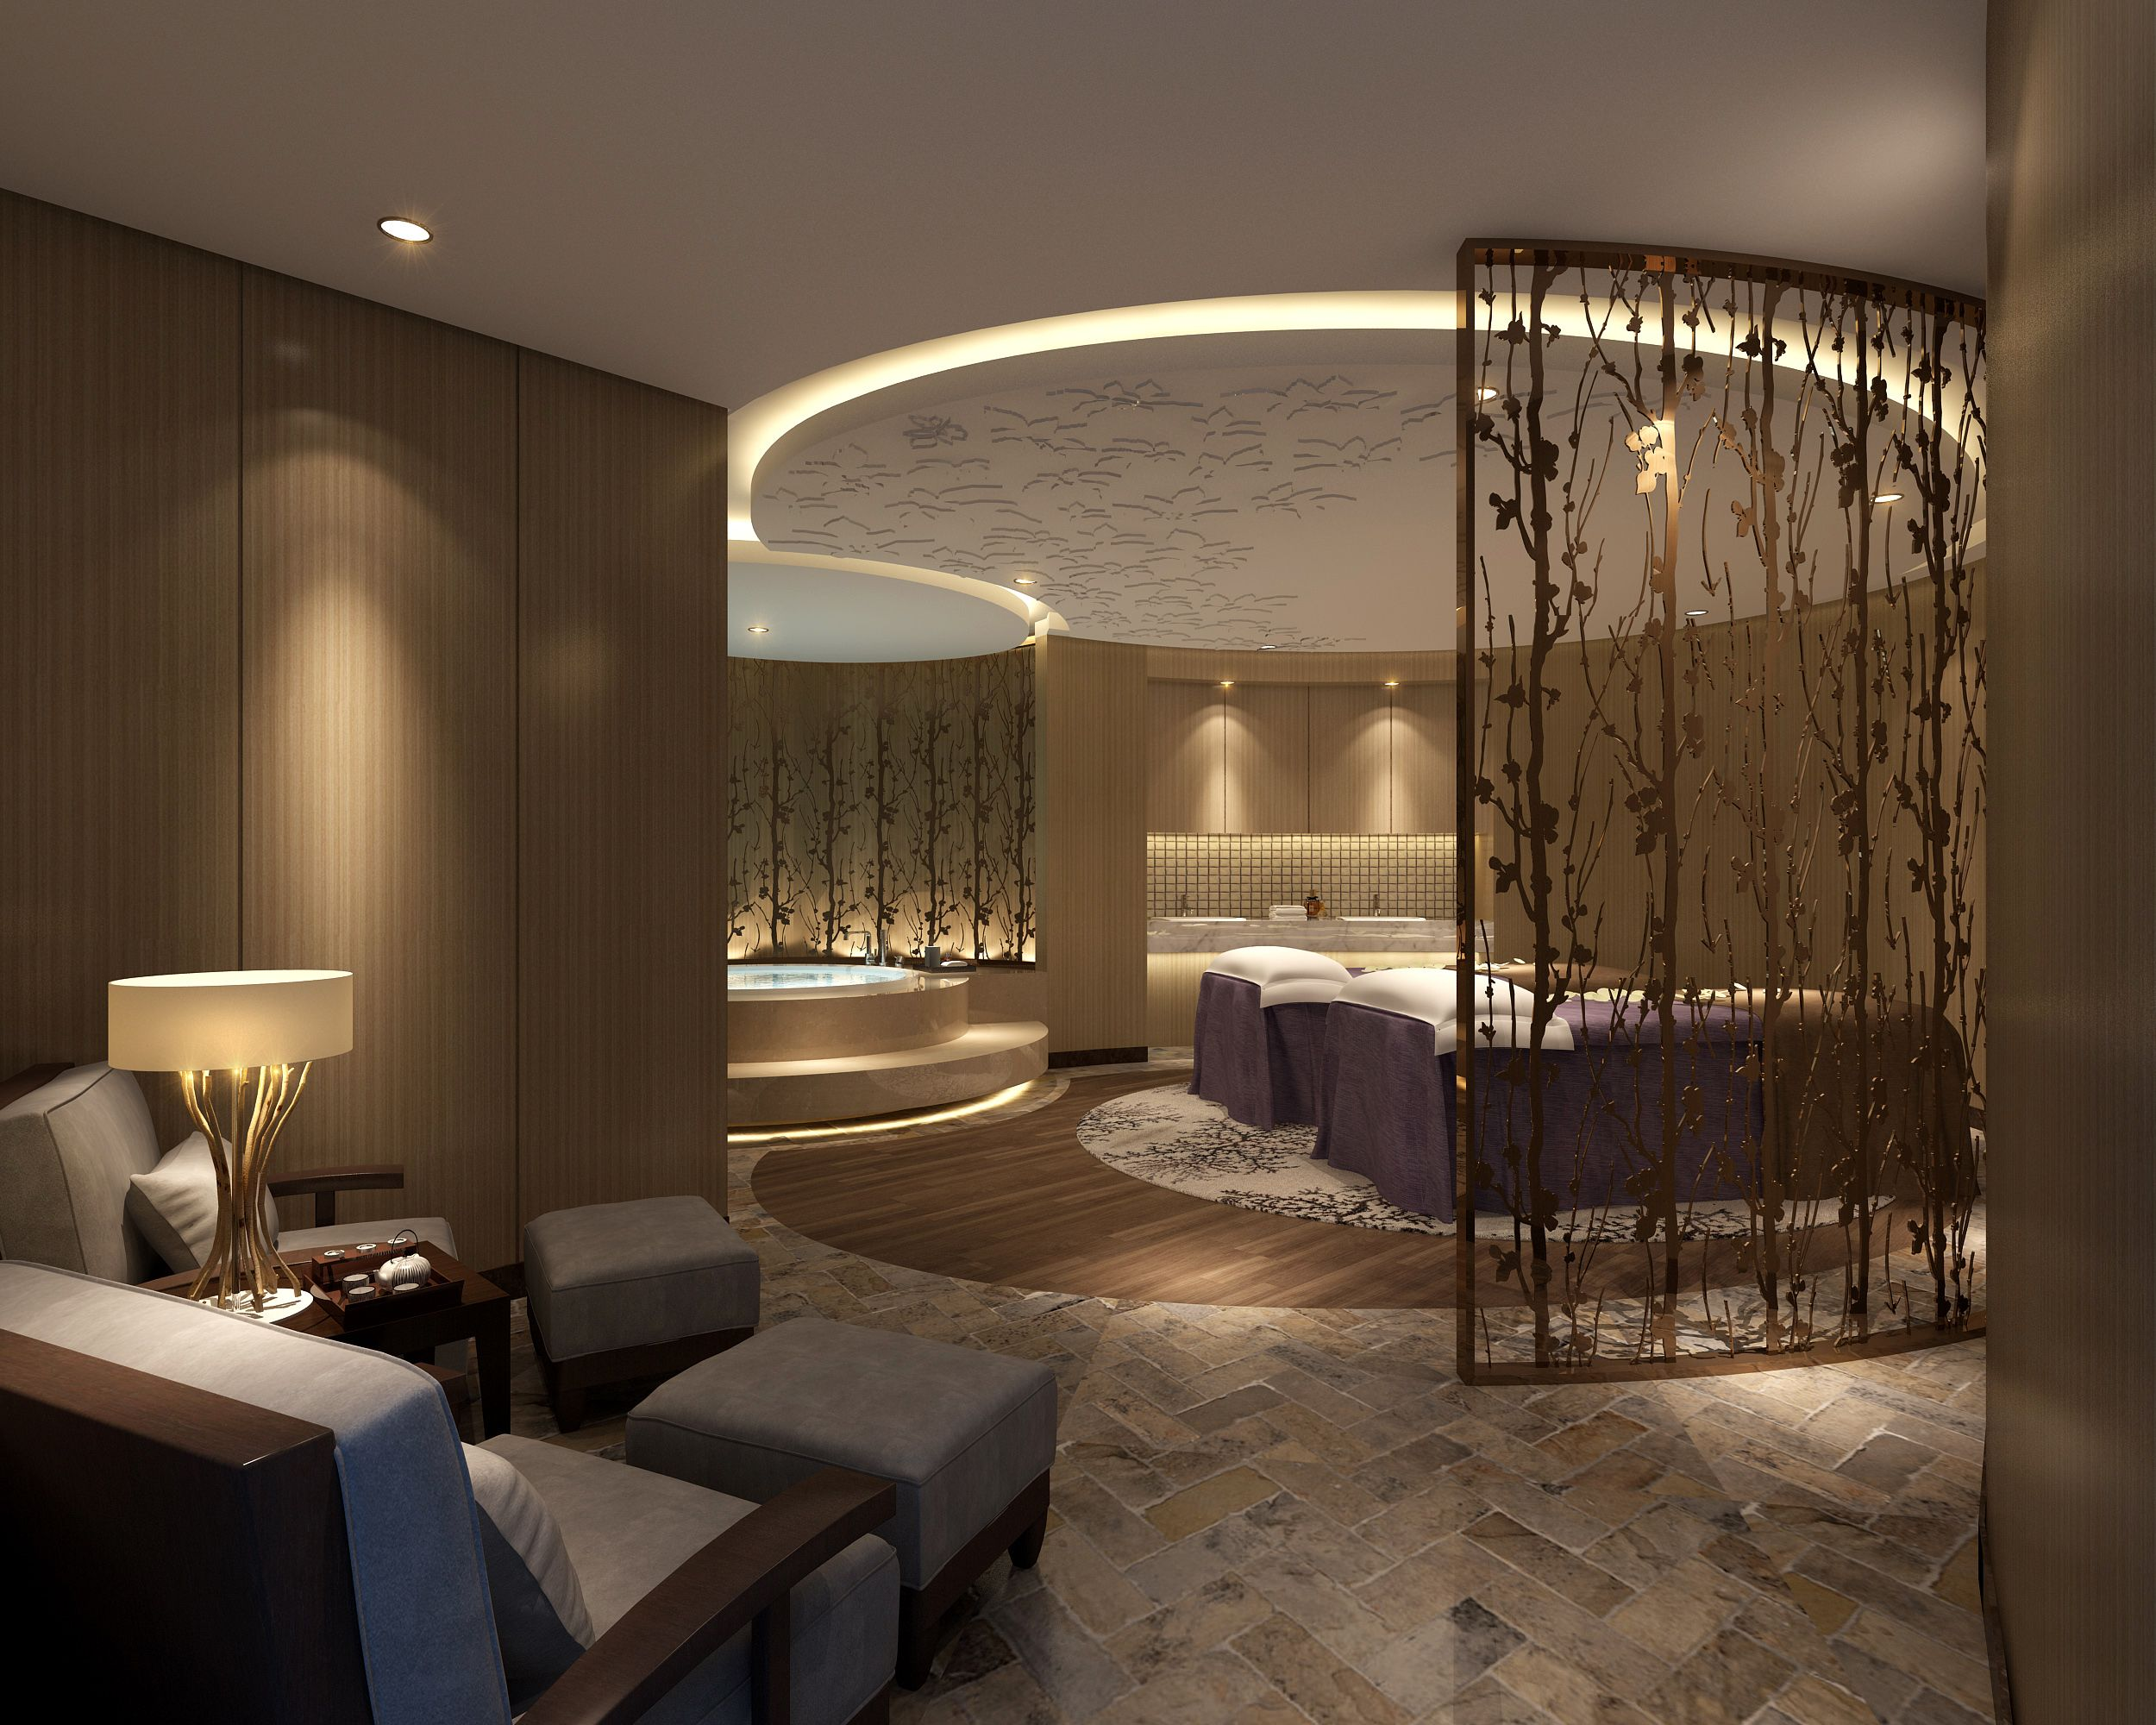 Visit The Post For More In 2020 Spa Treatment Room Home Spa